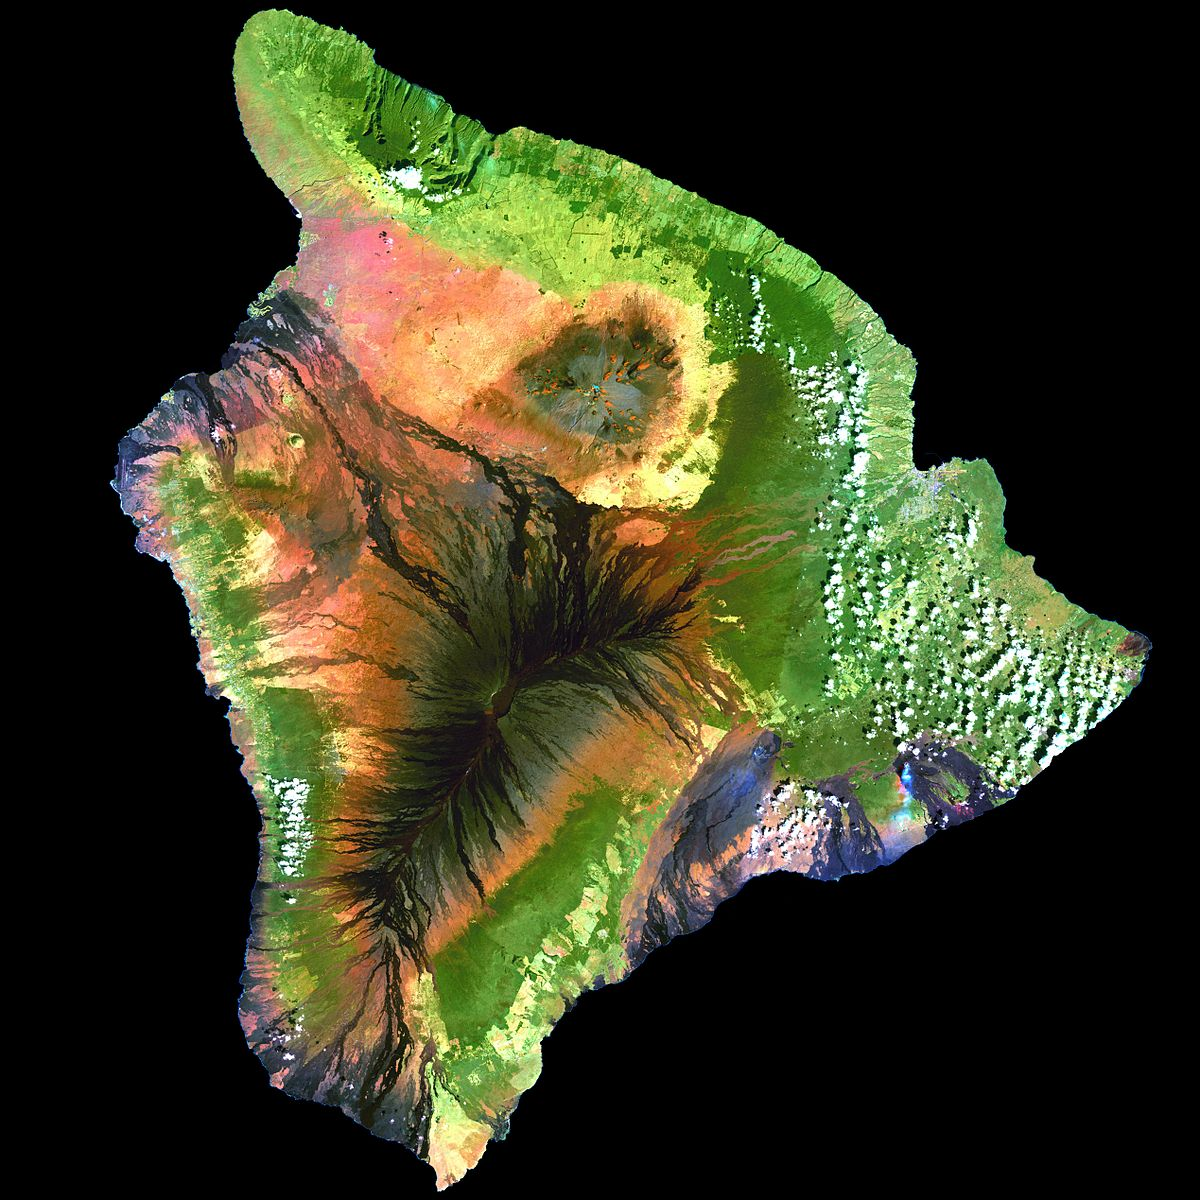 hawaii island wikipedia